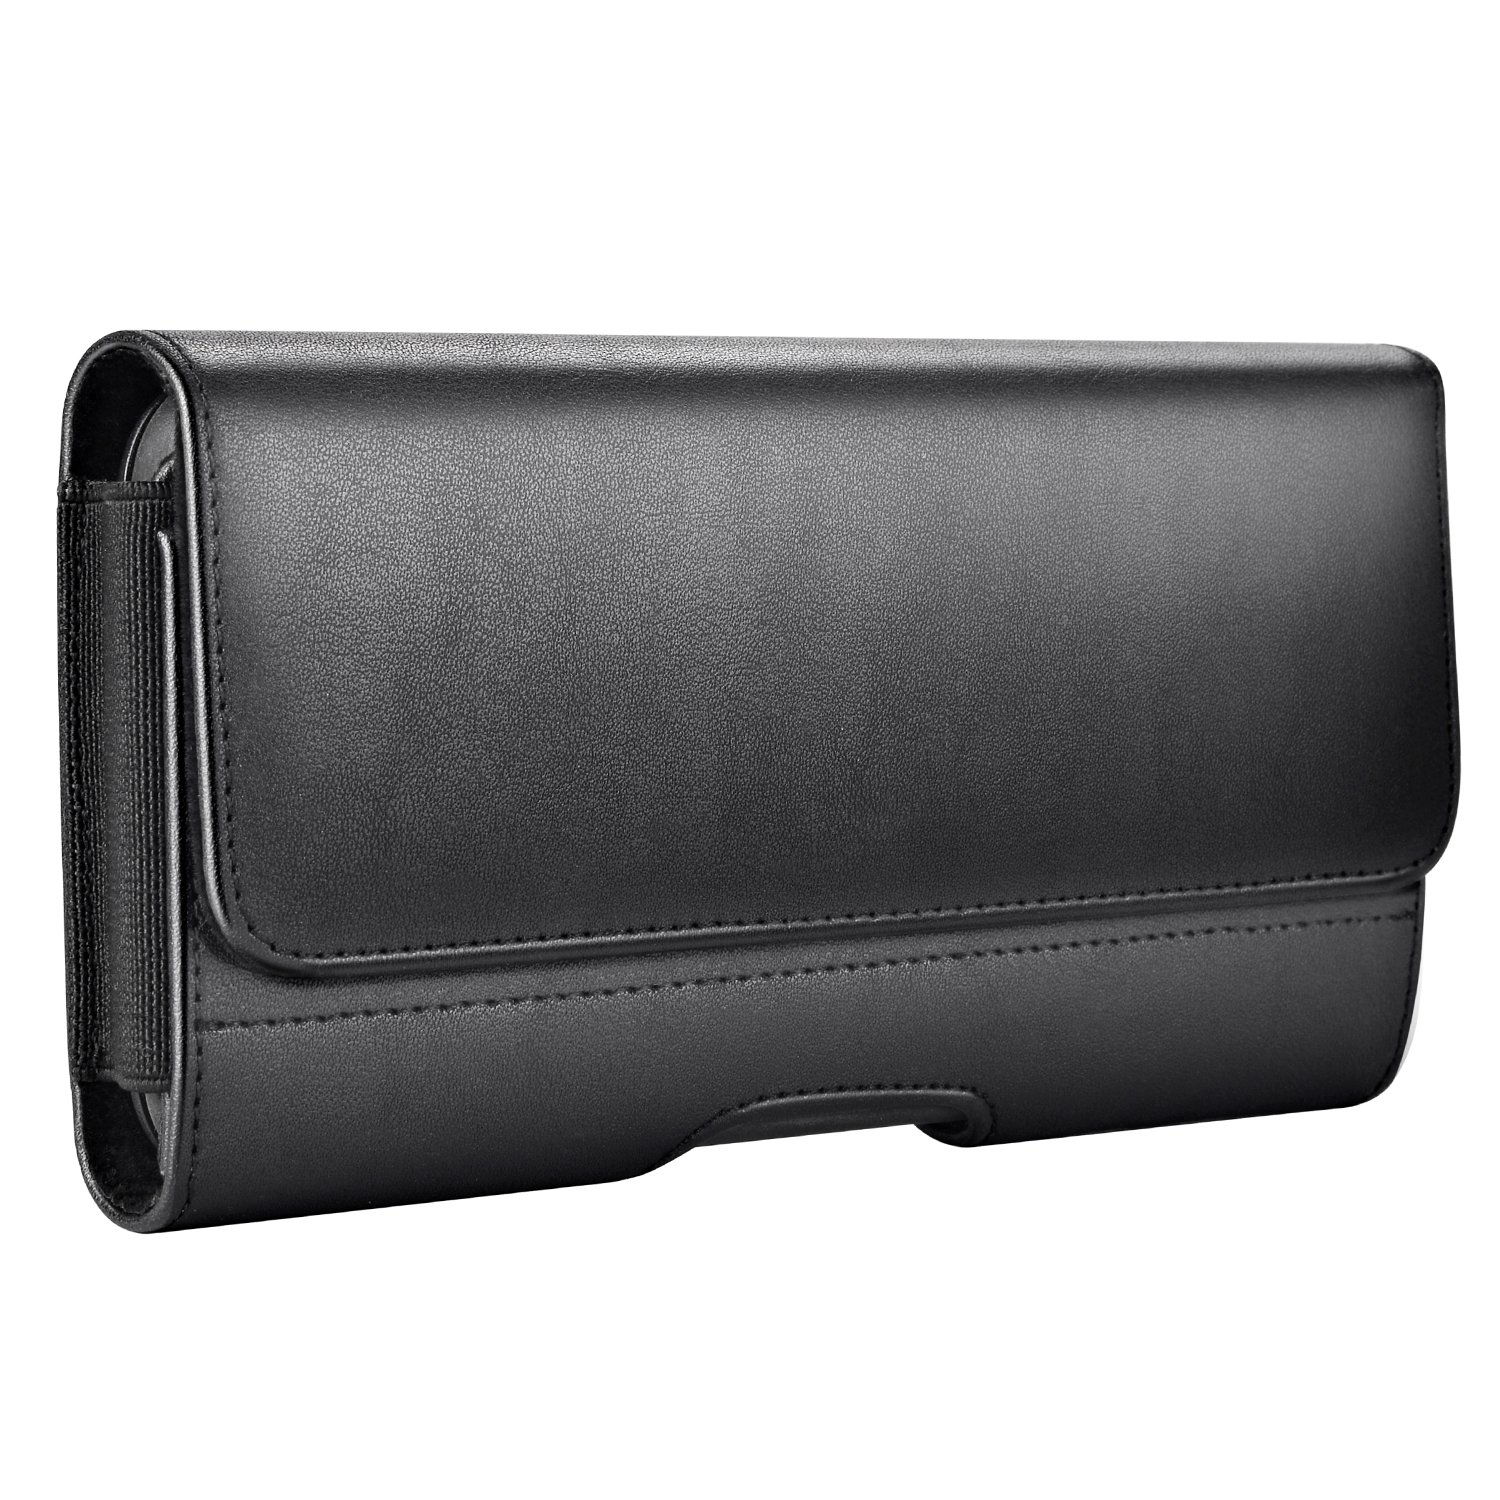 Mopaclle Galaxy S9 Plus S8 Plus Belt Clip Case, Leather Holster Case Carrying Cellphone Pouch for Samsung Galaxy S9 Plus, Galaxy S8 Plus with a Slim Hard Case On - Built In ID Card Slots - Black